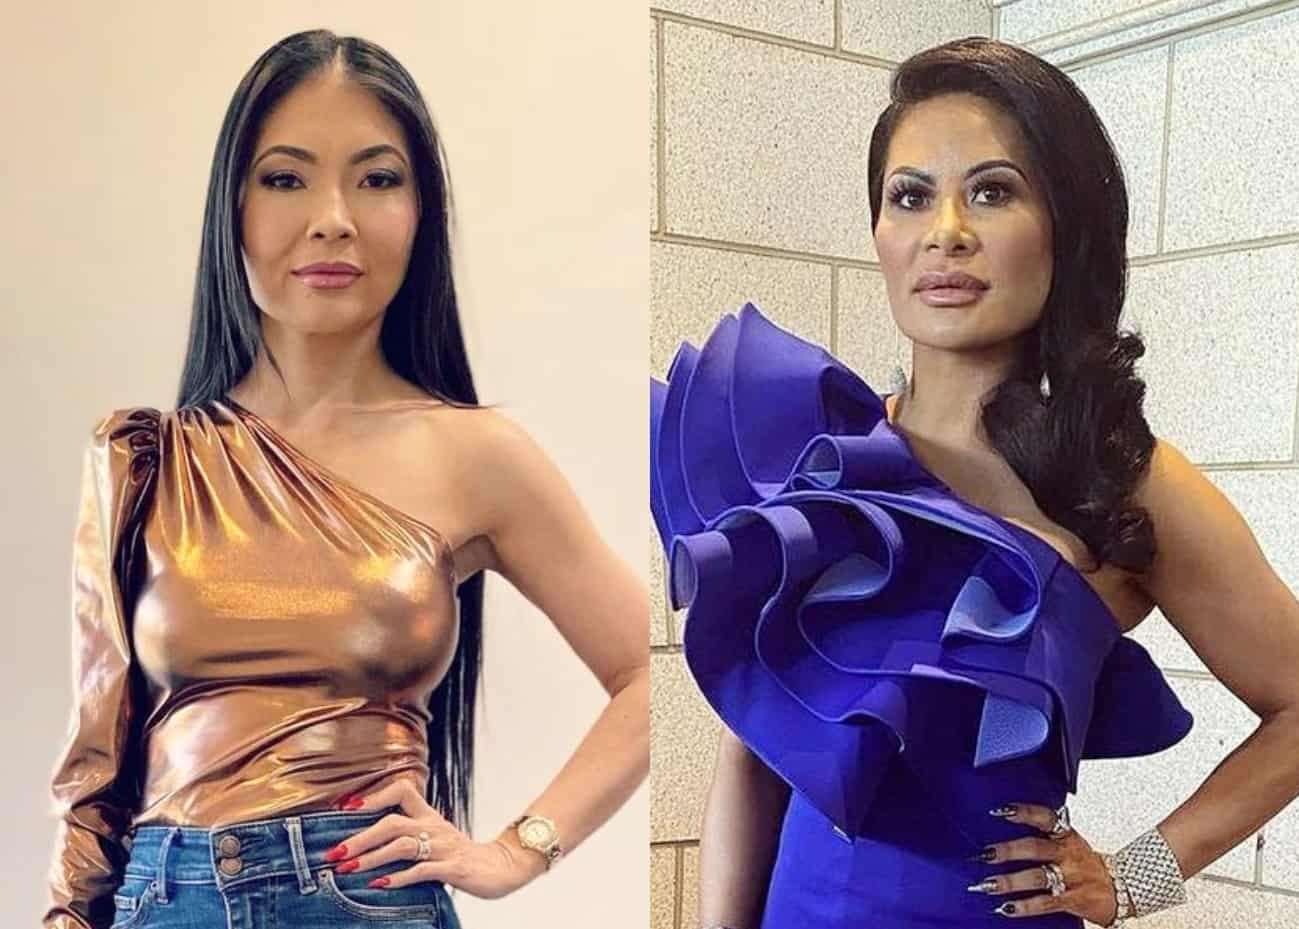 REPORT: RHOSLC Newbie Jennie Nguyen Promoted to Full-Time Housewife Amid Jen Shah's Fraud Case as Source Says Jennie May Eventually Replace Jen